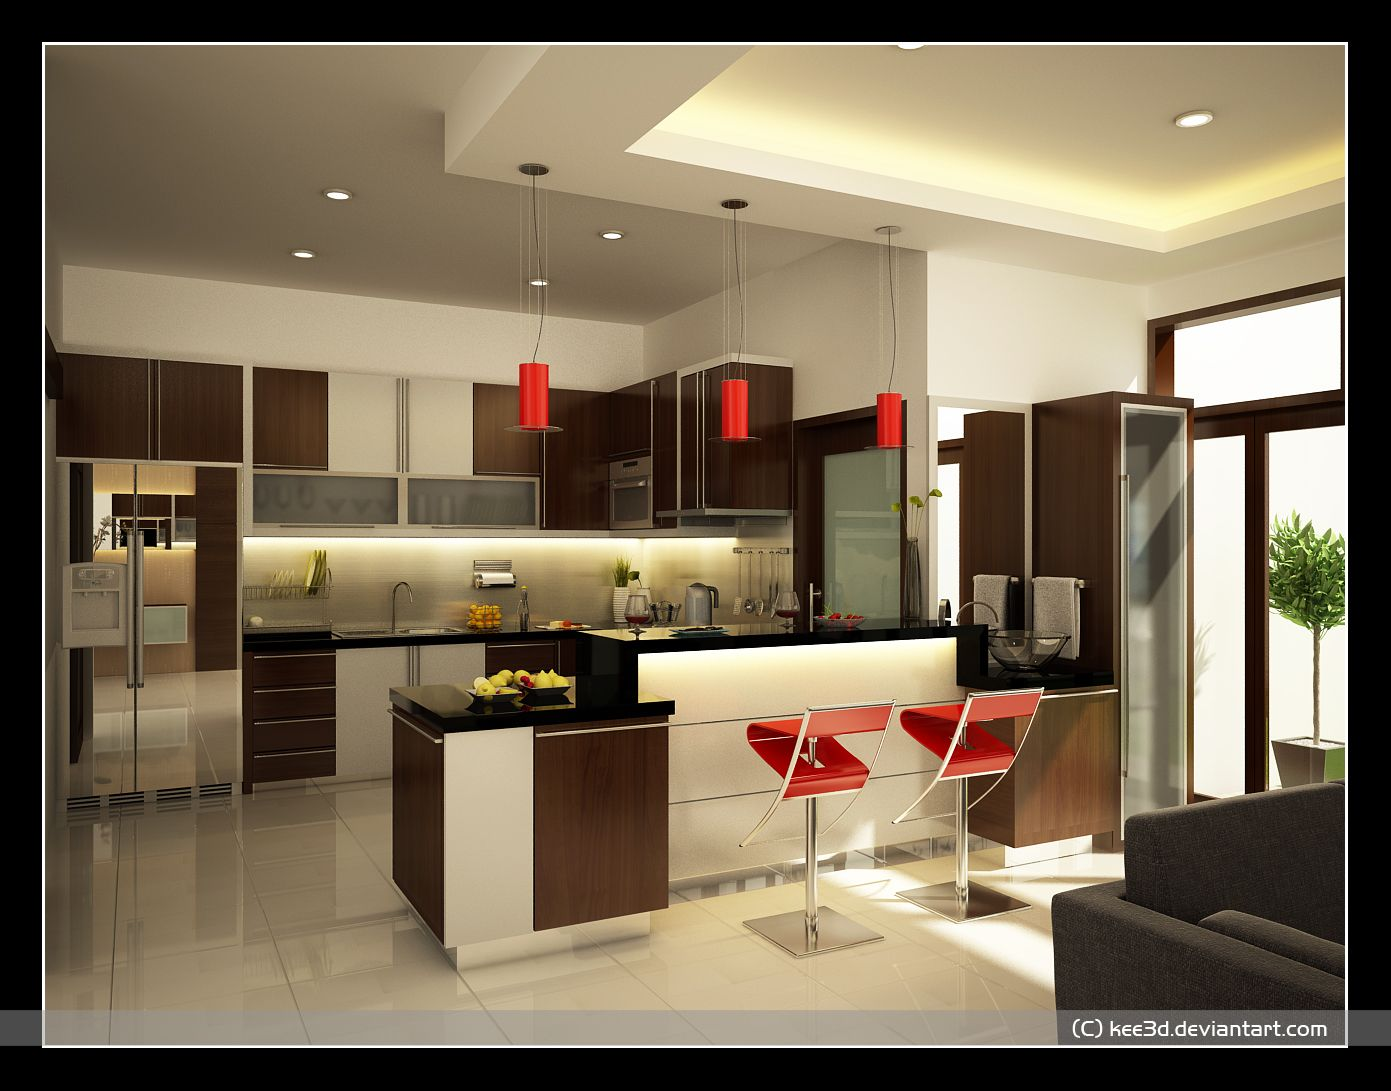 modern red kitchen interior design inspirations modern maroon kitchen design ideas bhutocom kitchen inspiration dom pinterest - Interior Design Kitchen Ideas